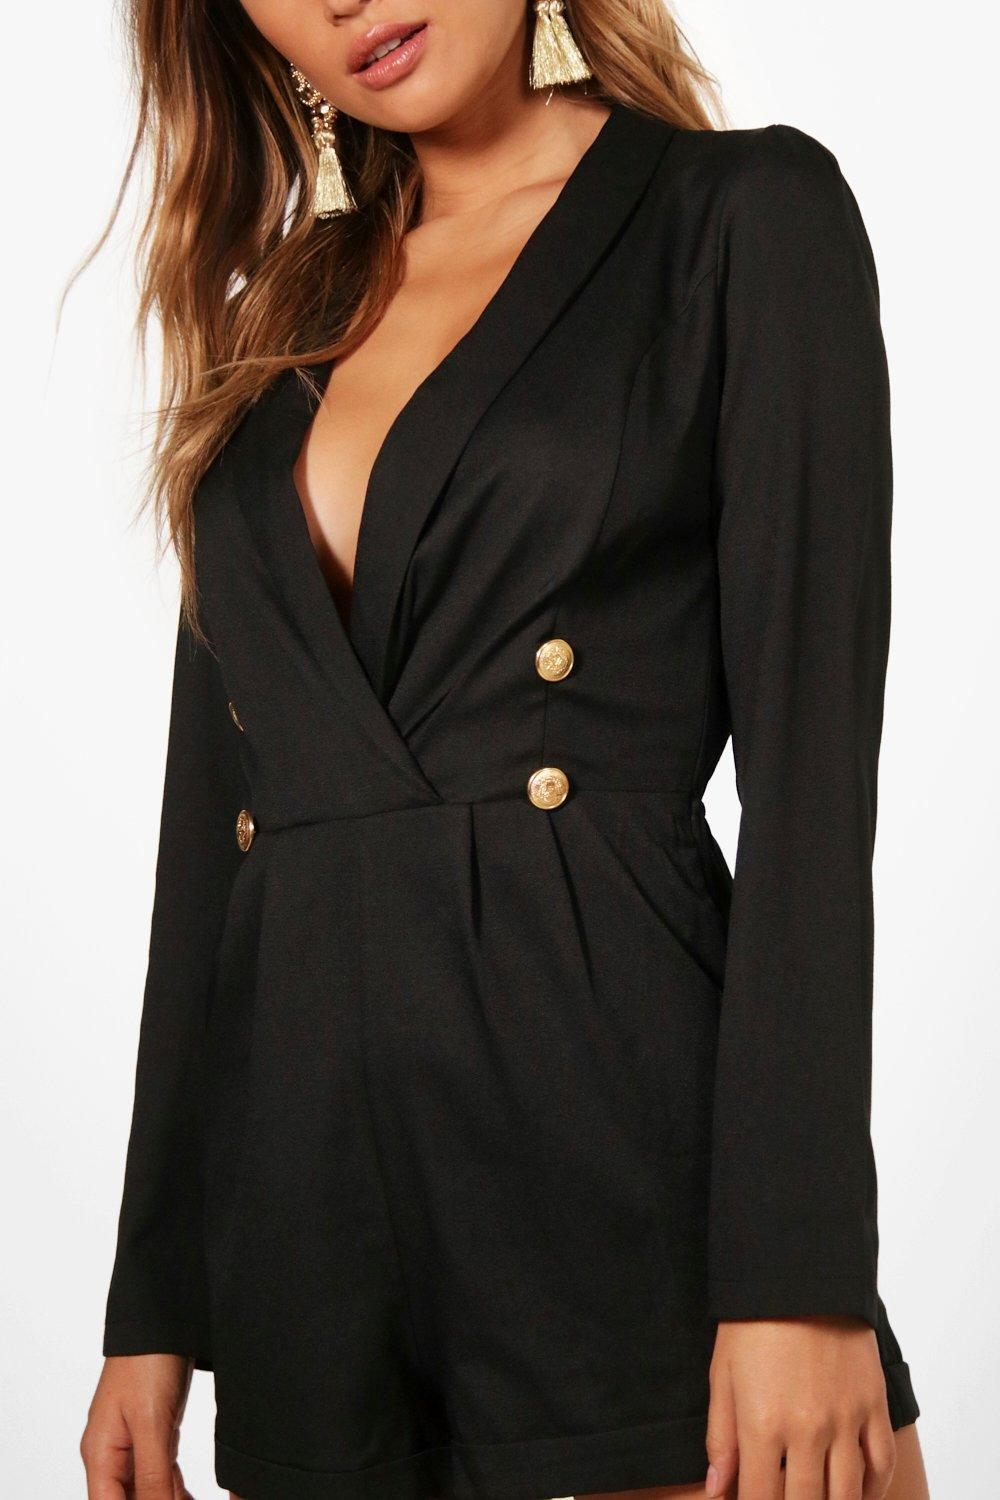 Button black Button Tuxedo Playsuit Military Button Tuxedo black Military Playsuit Military Tuxedo anXq8Oax7w